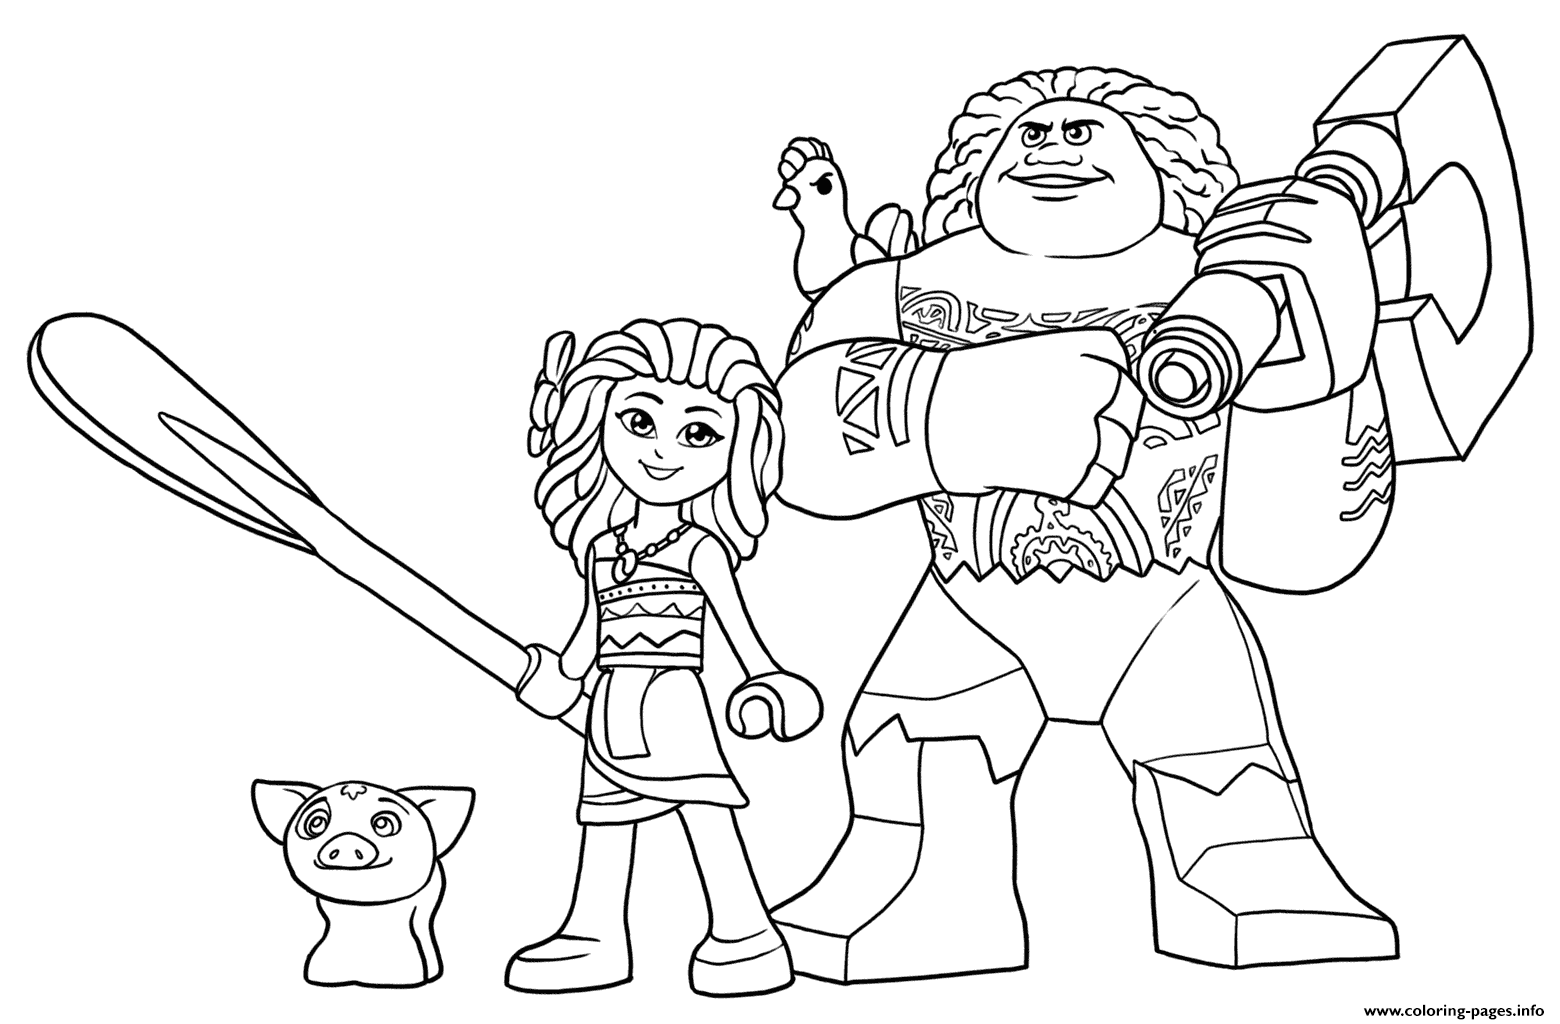 LEGO Moana And Maui Coloring Pages